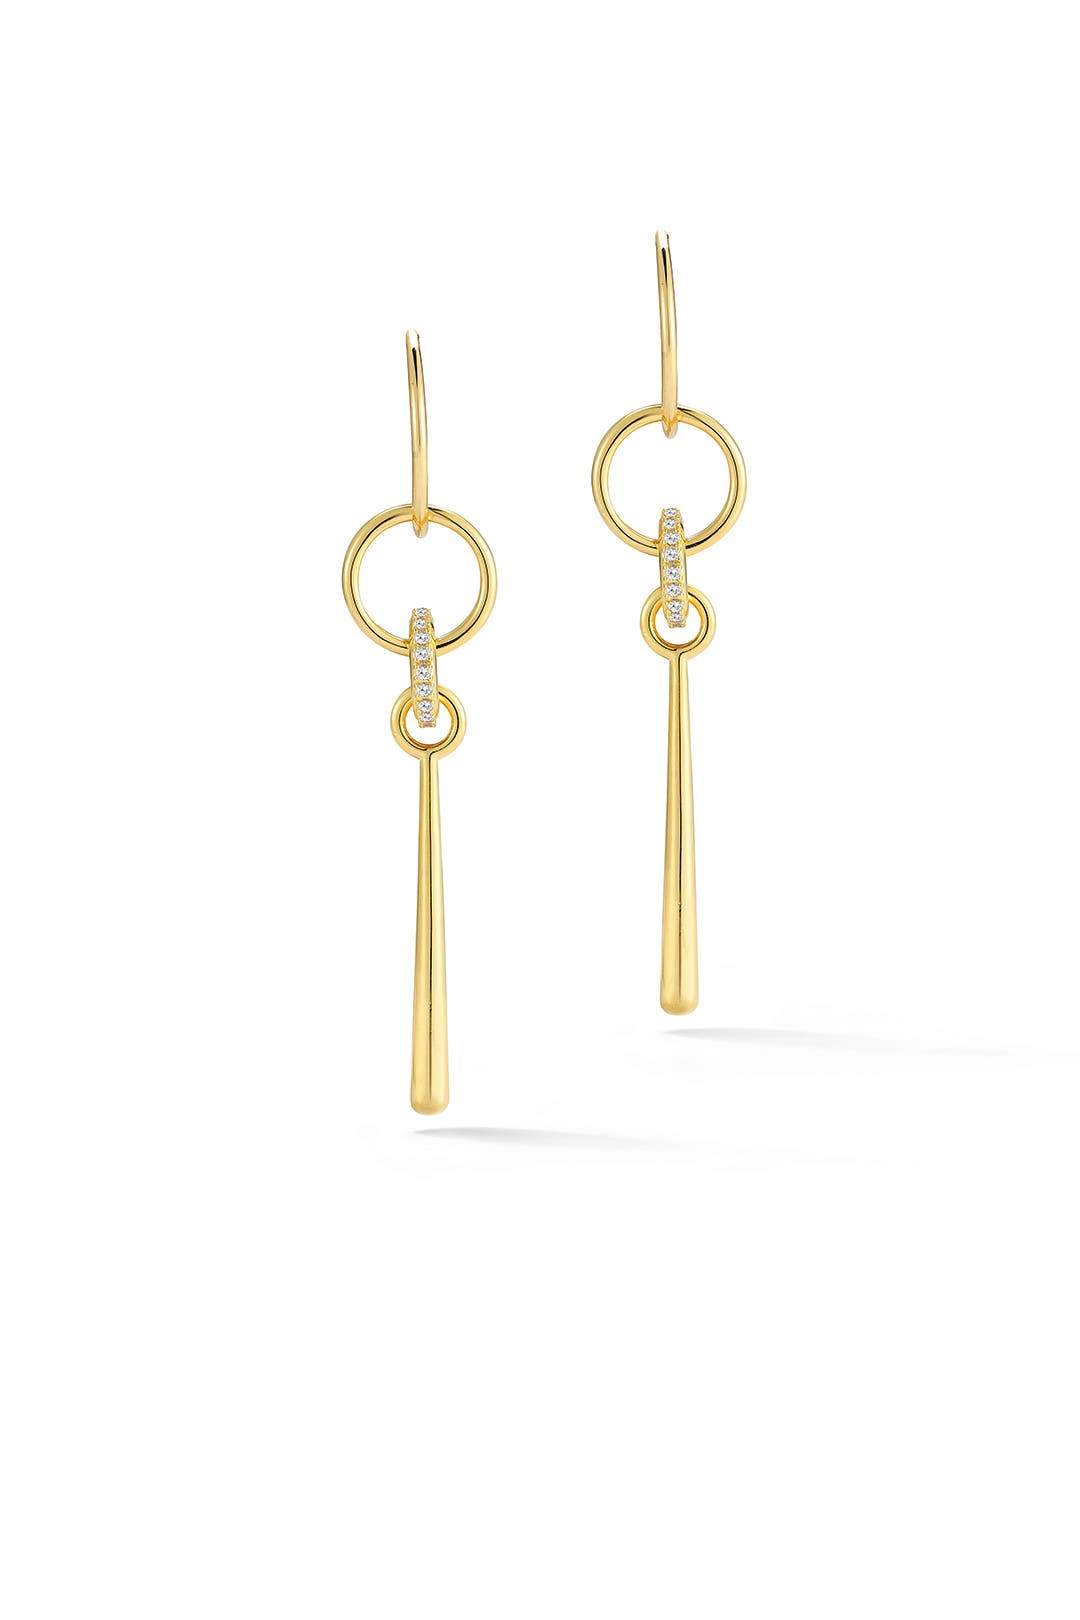 Gold Bonnie Earrings By Elizabeth And James Accessories For $40  Rent The  Runway